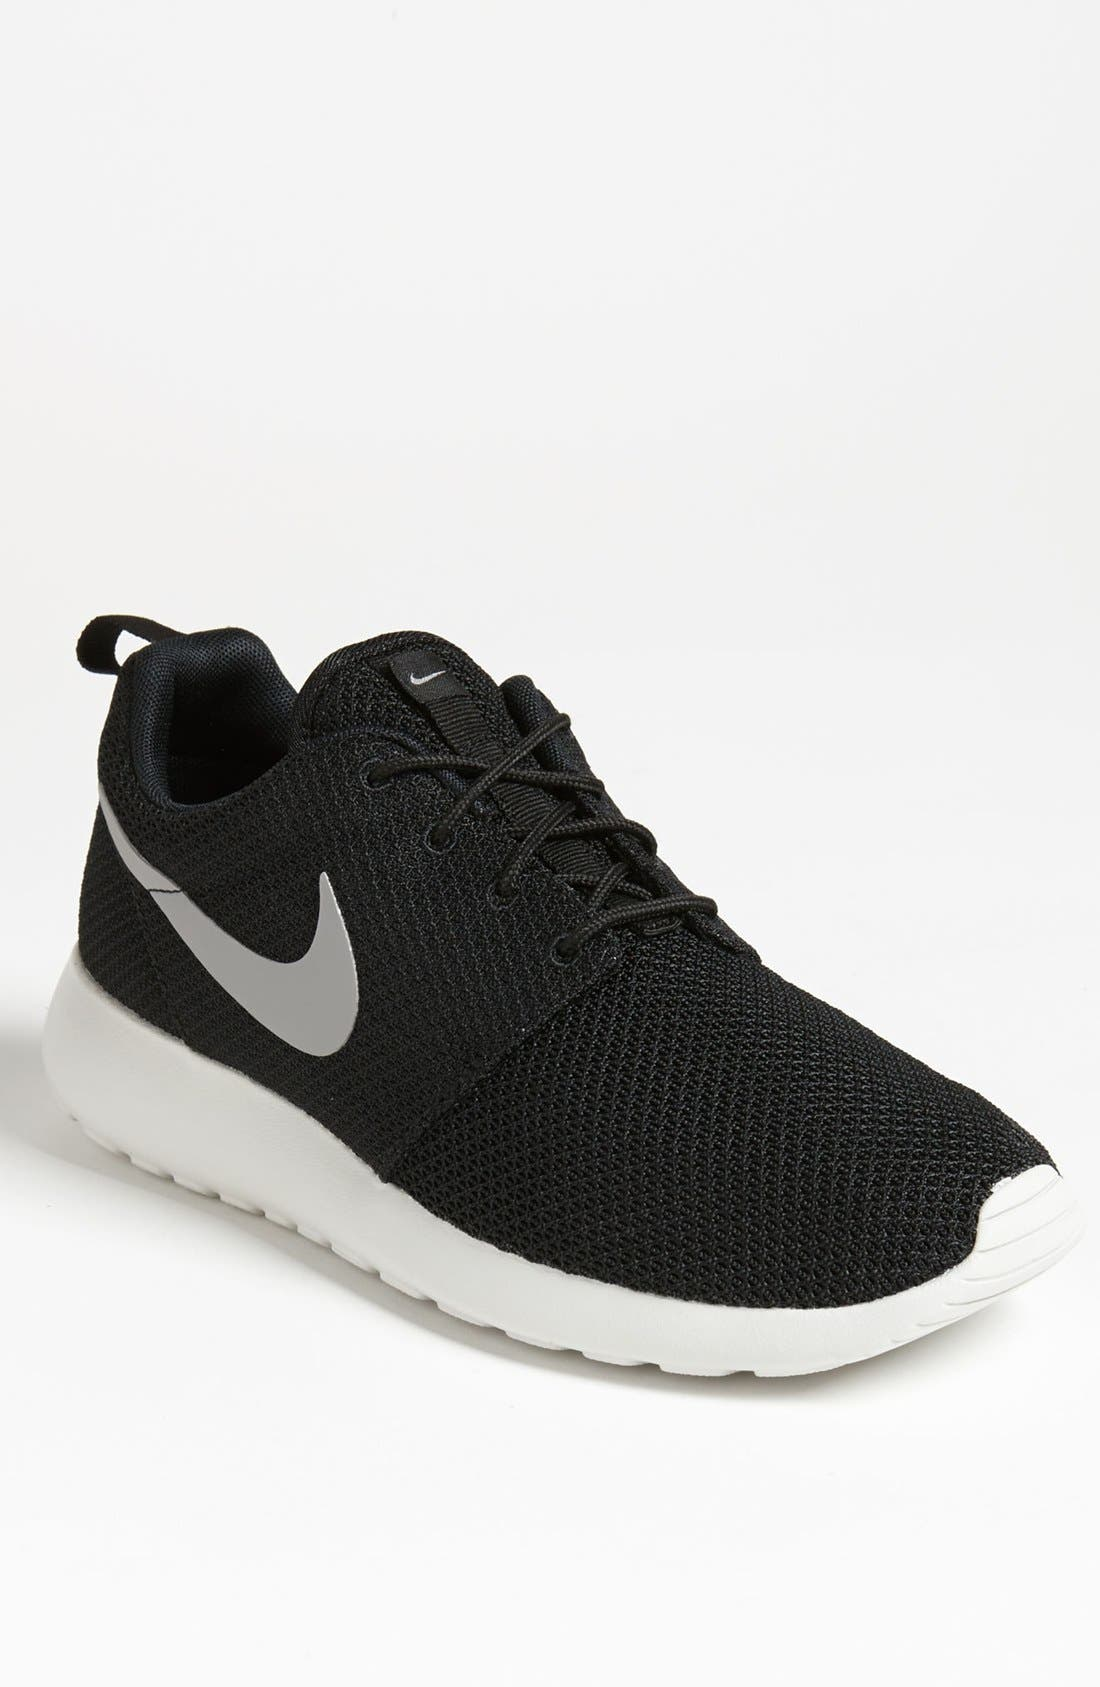 'Roshe Run' Sneaker, Main, color, 004